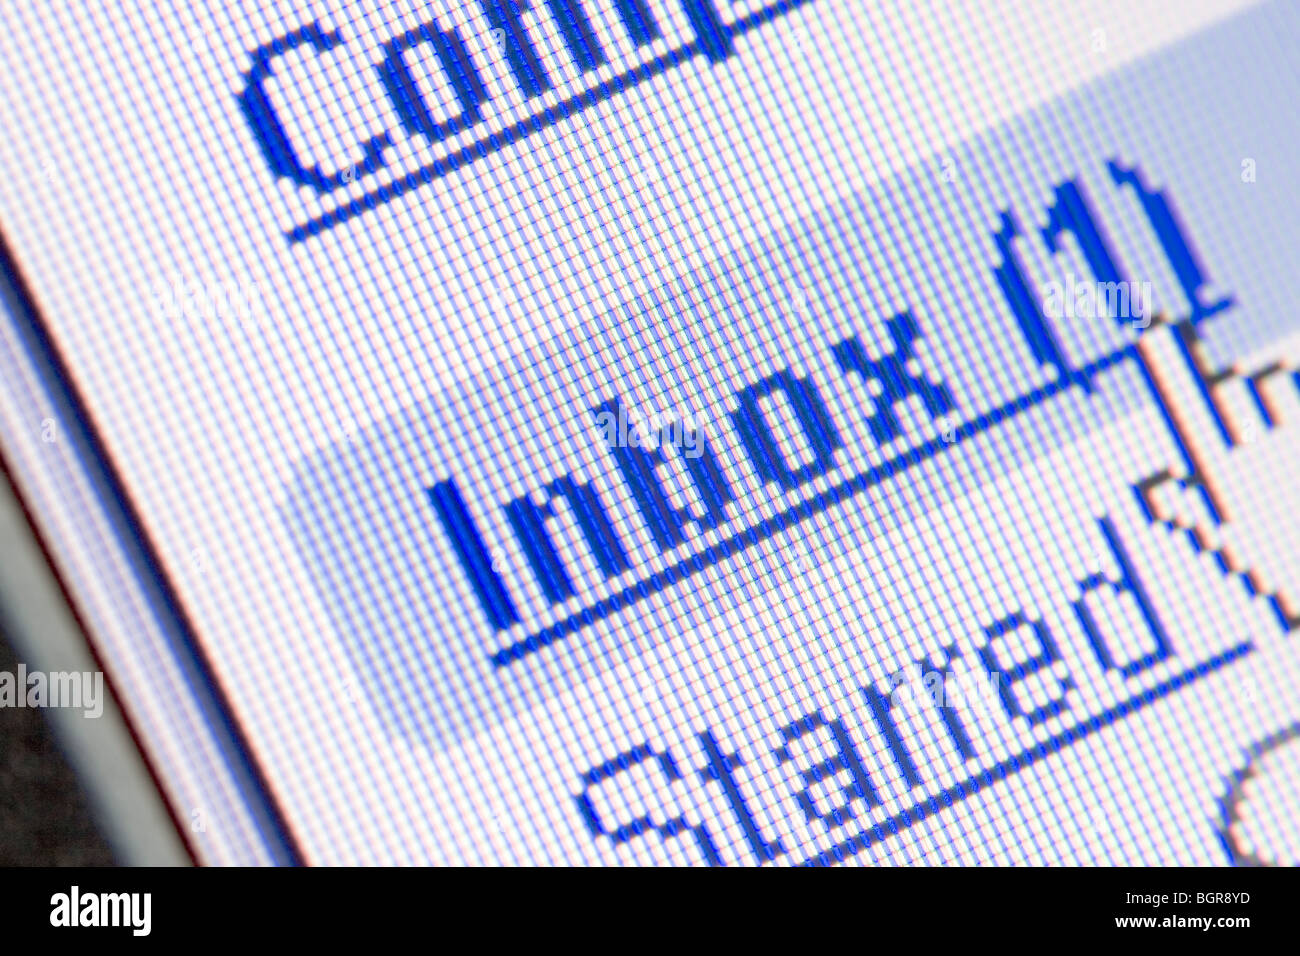 Monitor screen showing email in the inbox - Stock Image